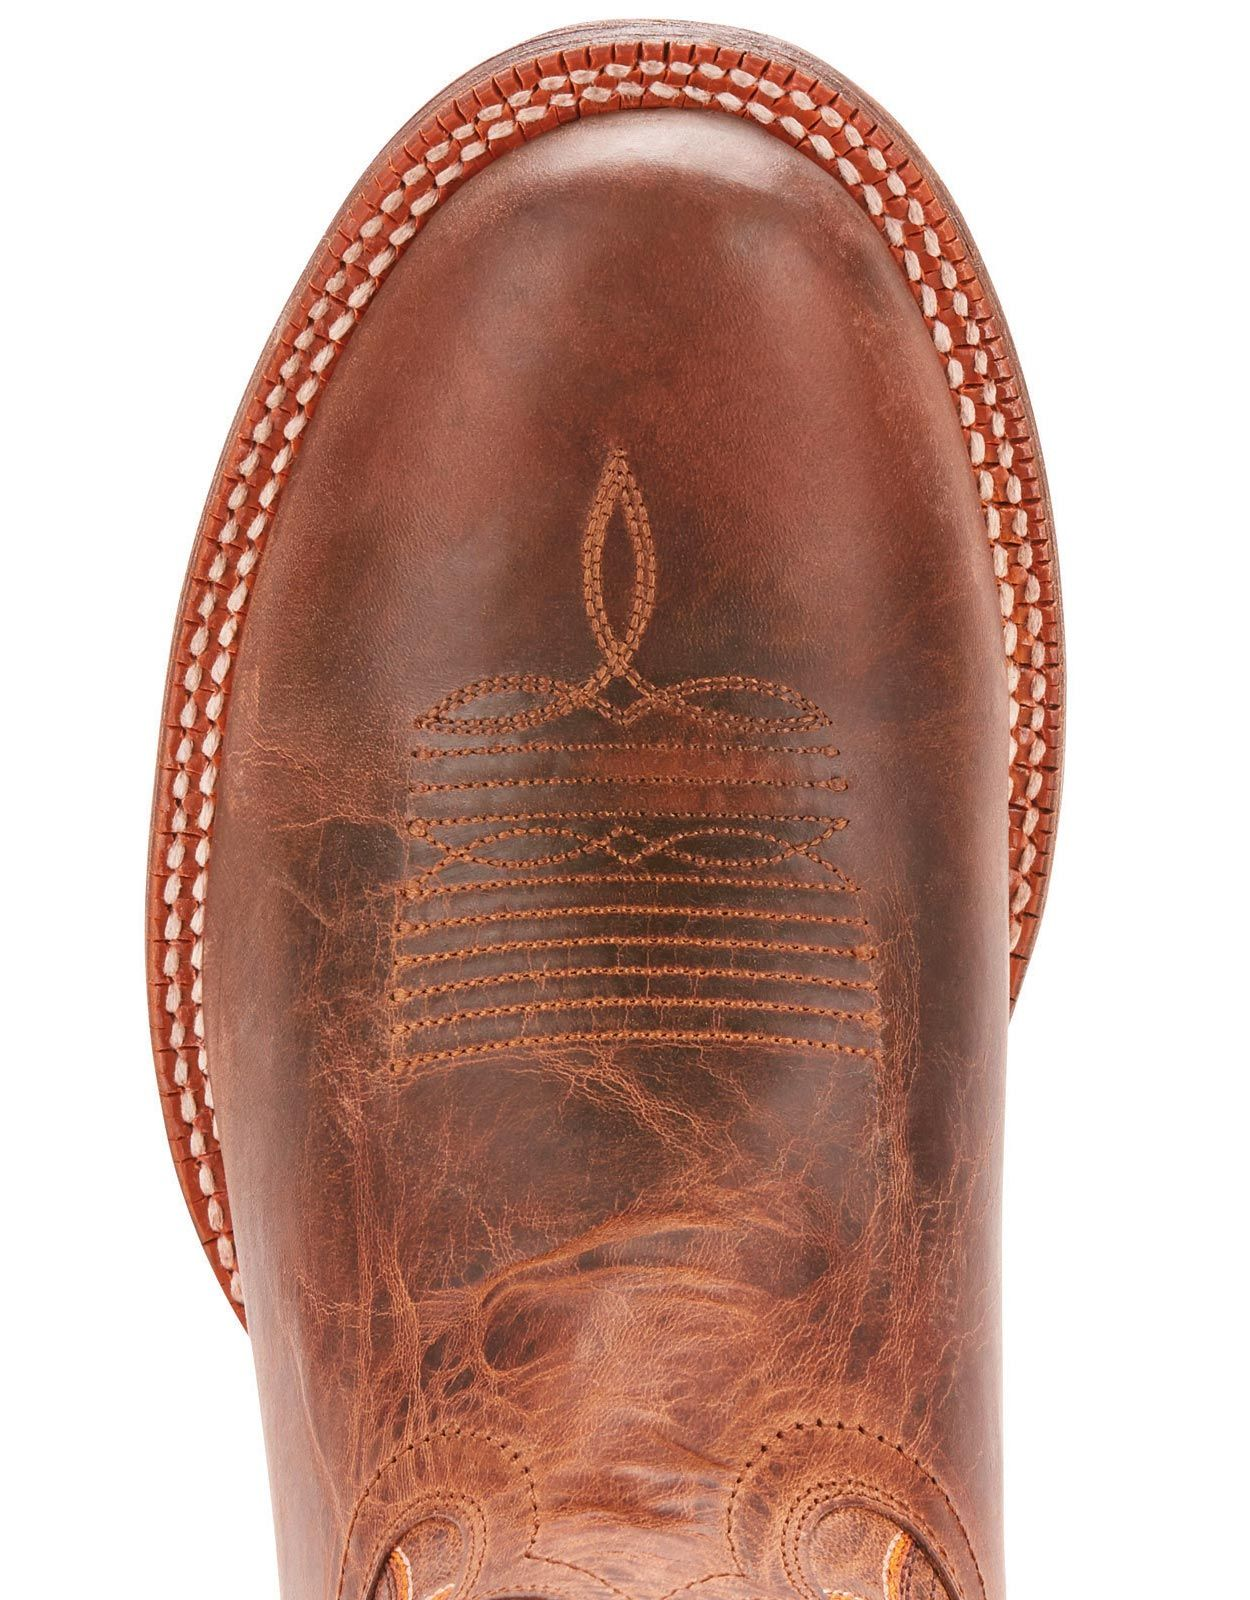 9235a4e0d ariat-men-s-circuit-competitor-11-square-toe-boots-weathered-tan-15.jpg